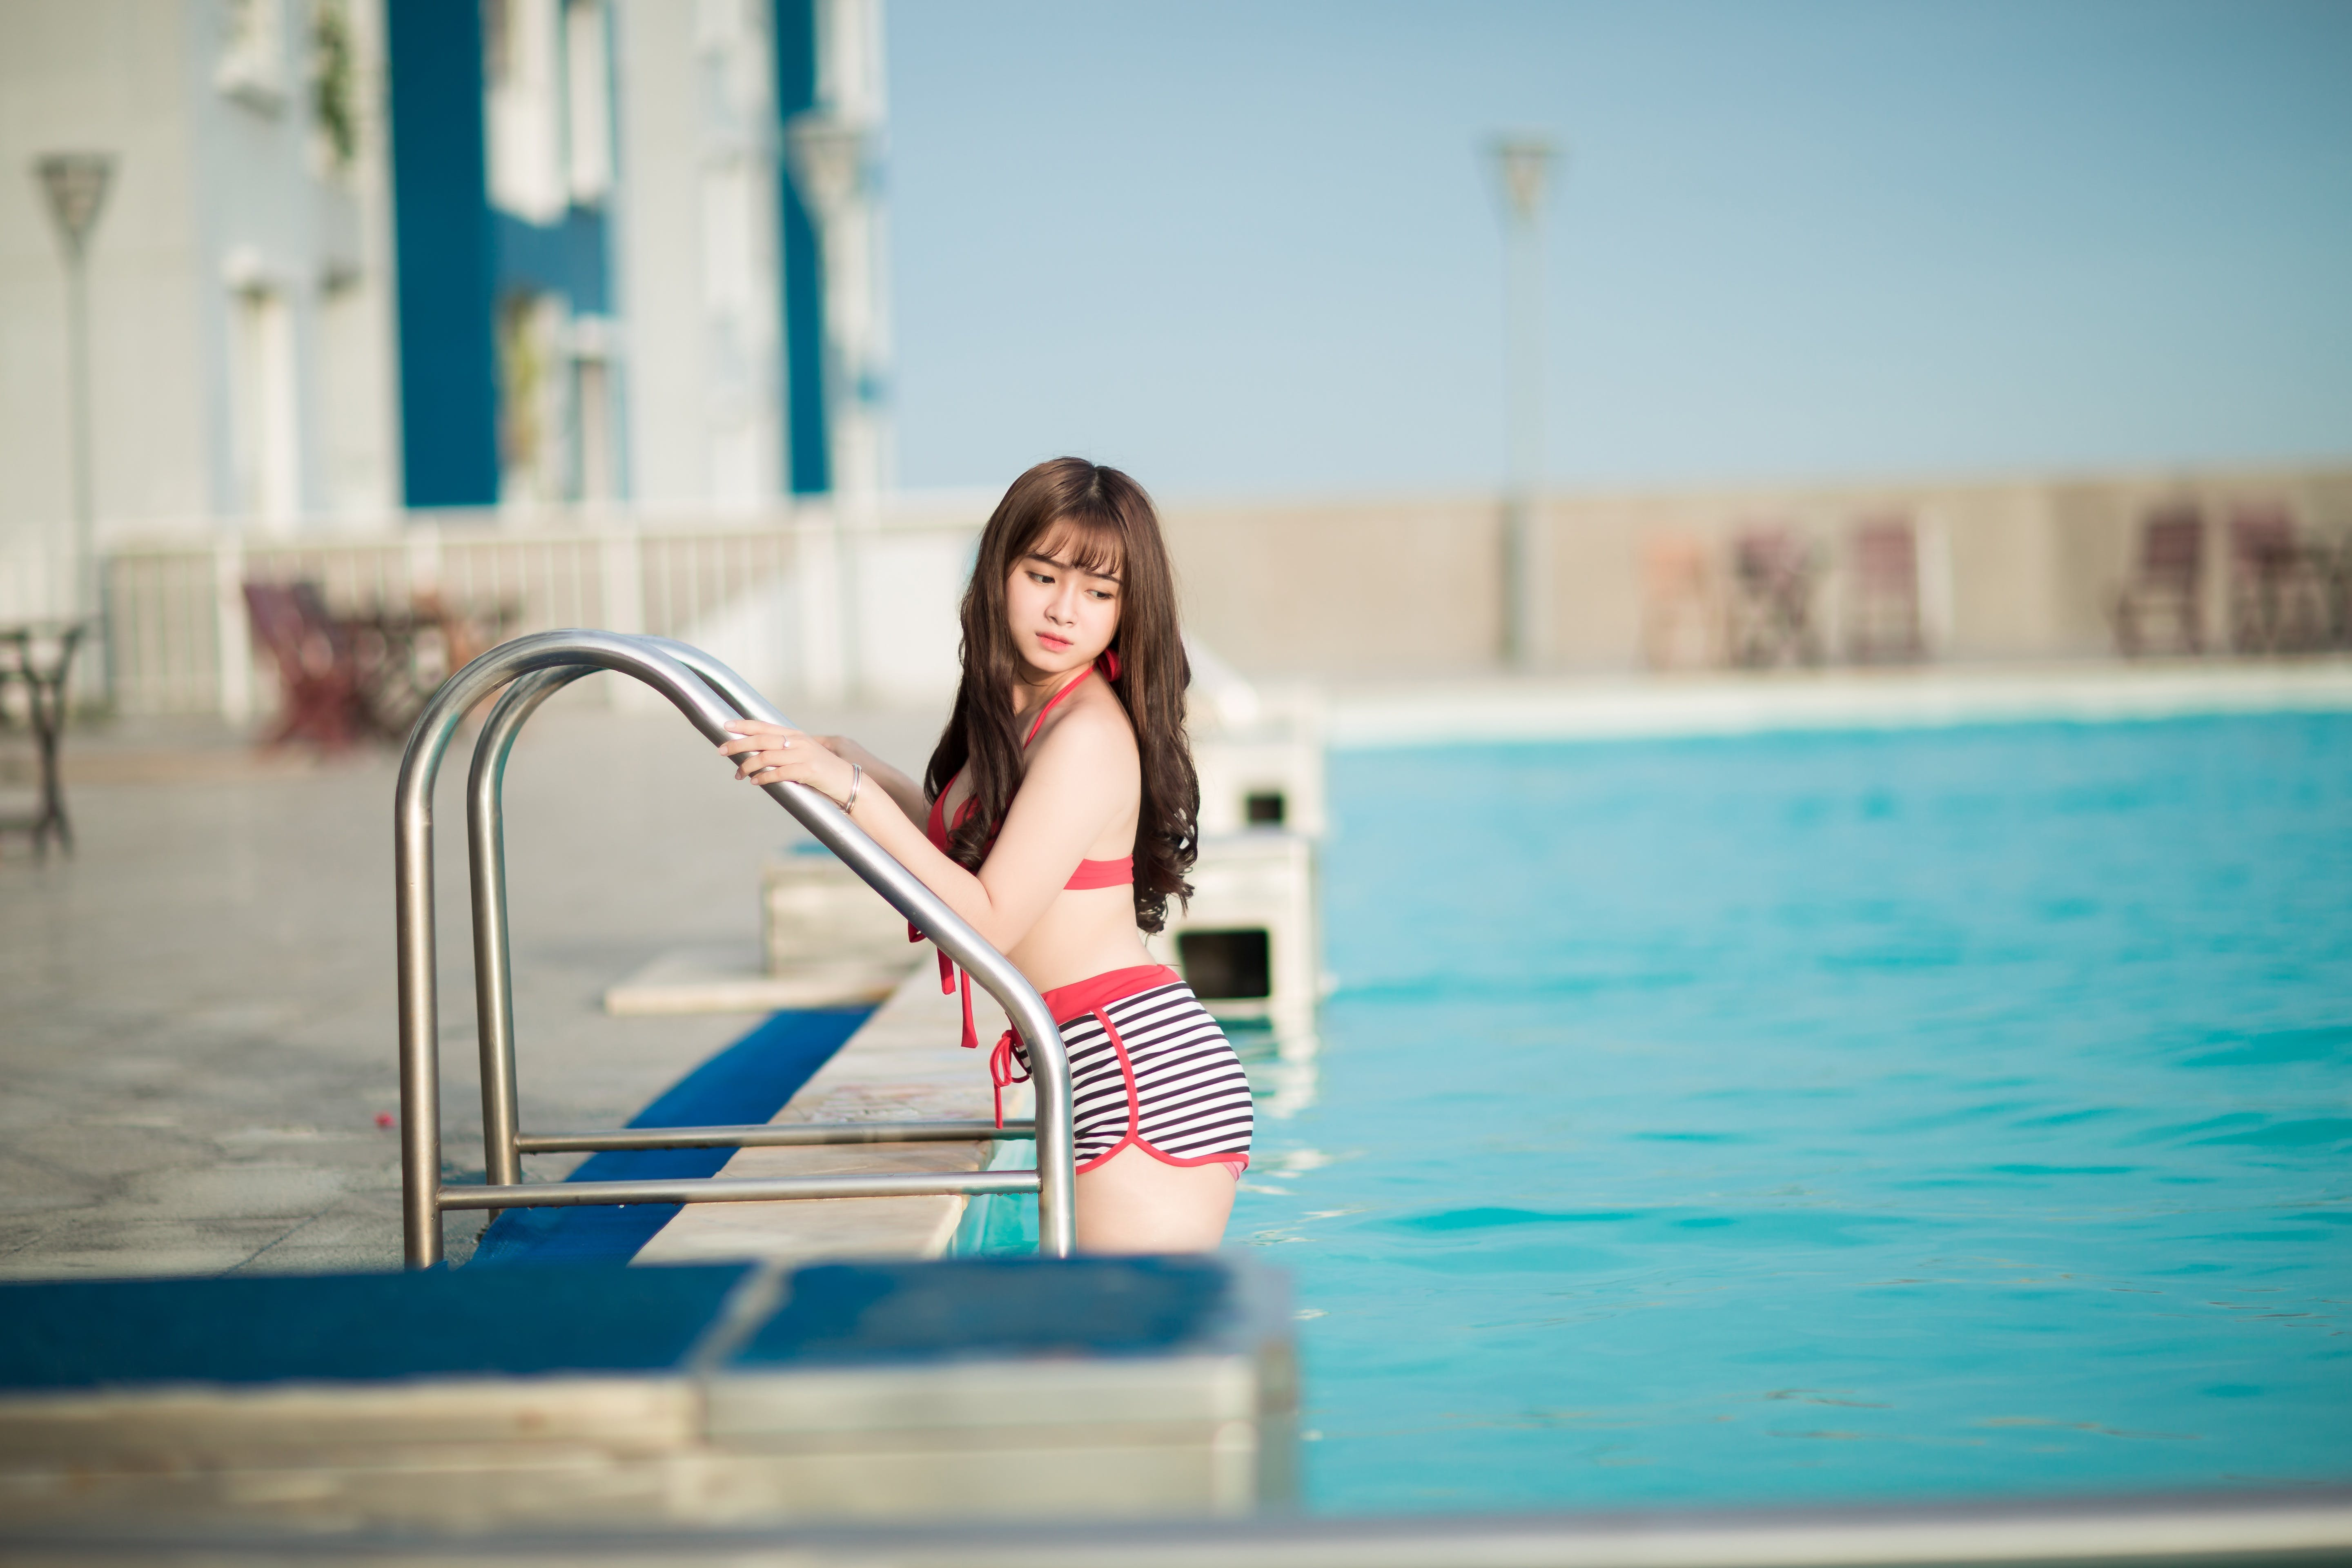 Woman Standing in Pool